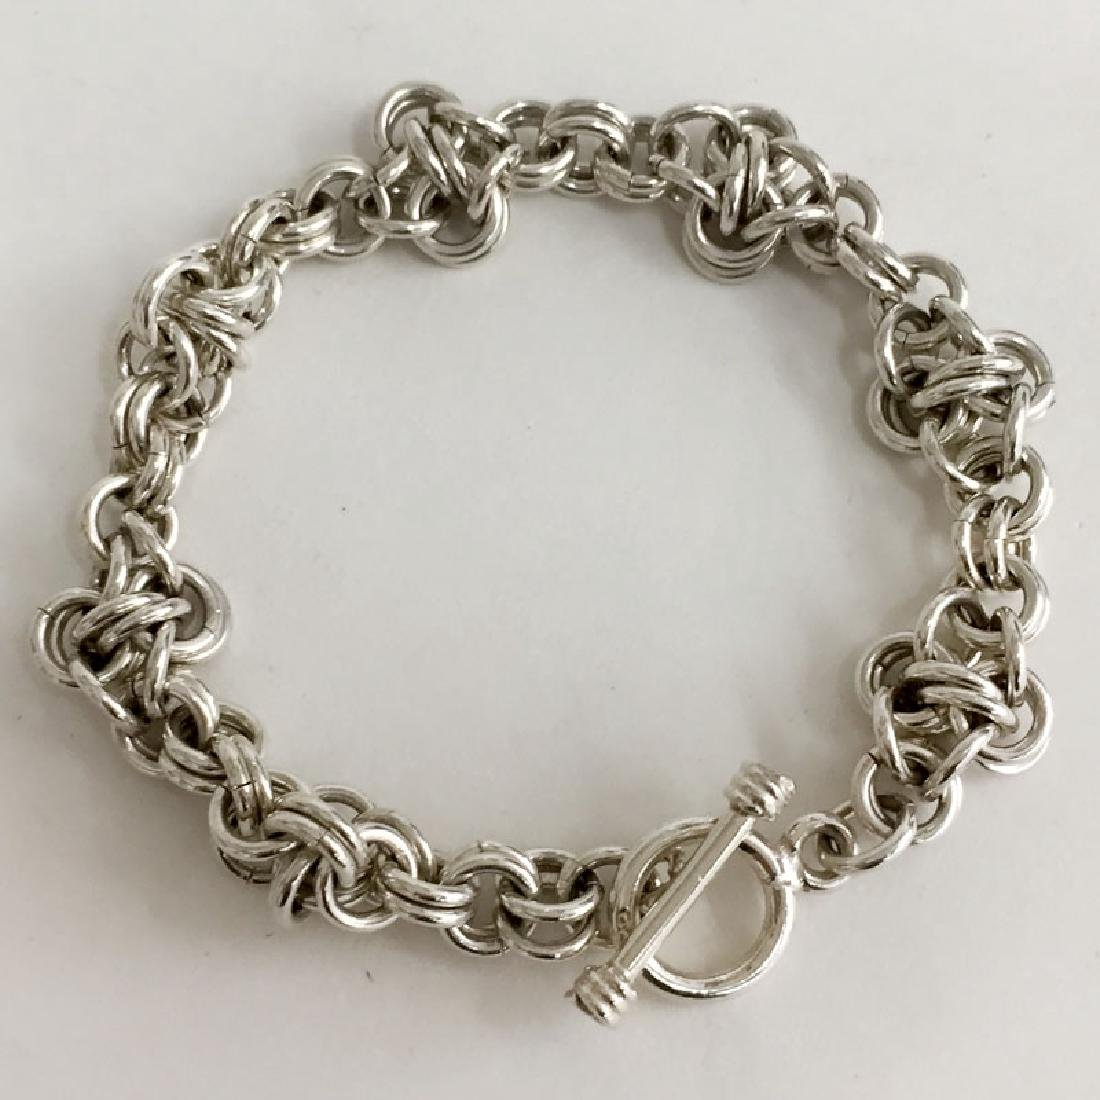 Sterling silver double Rollo links bracelet with toggle